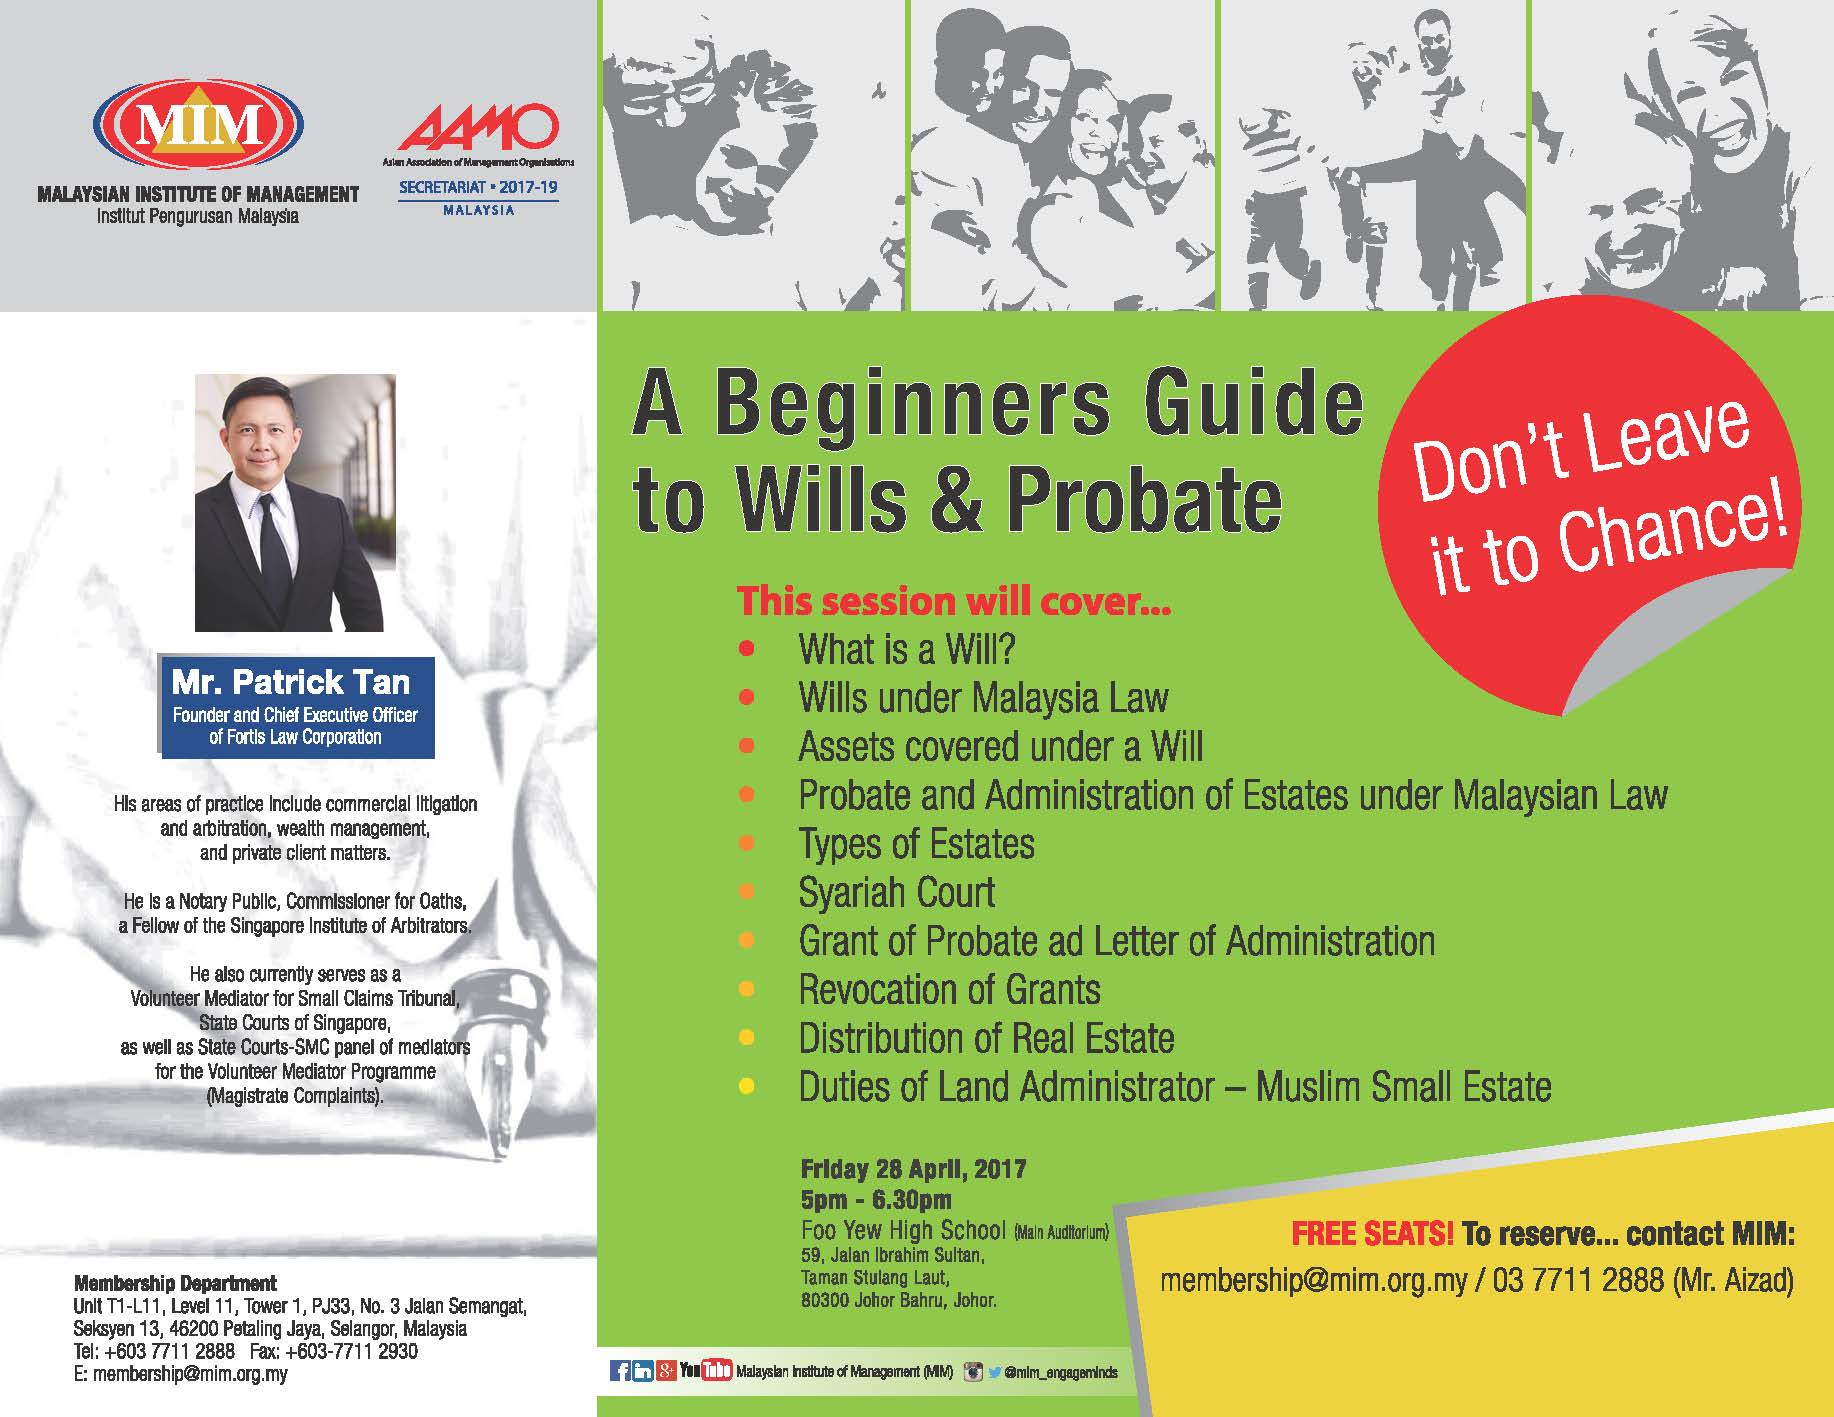 A Beginners Guide to Wills and Probate - Final